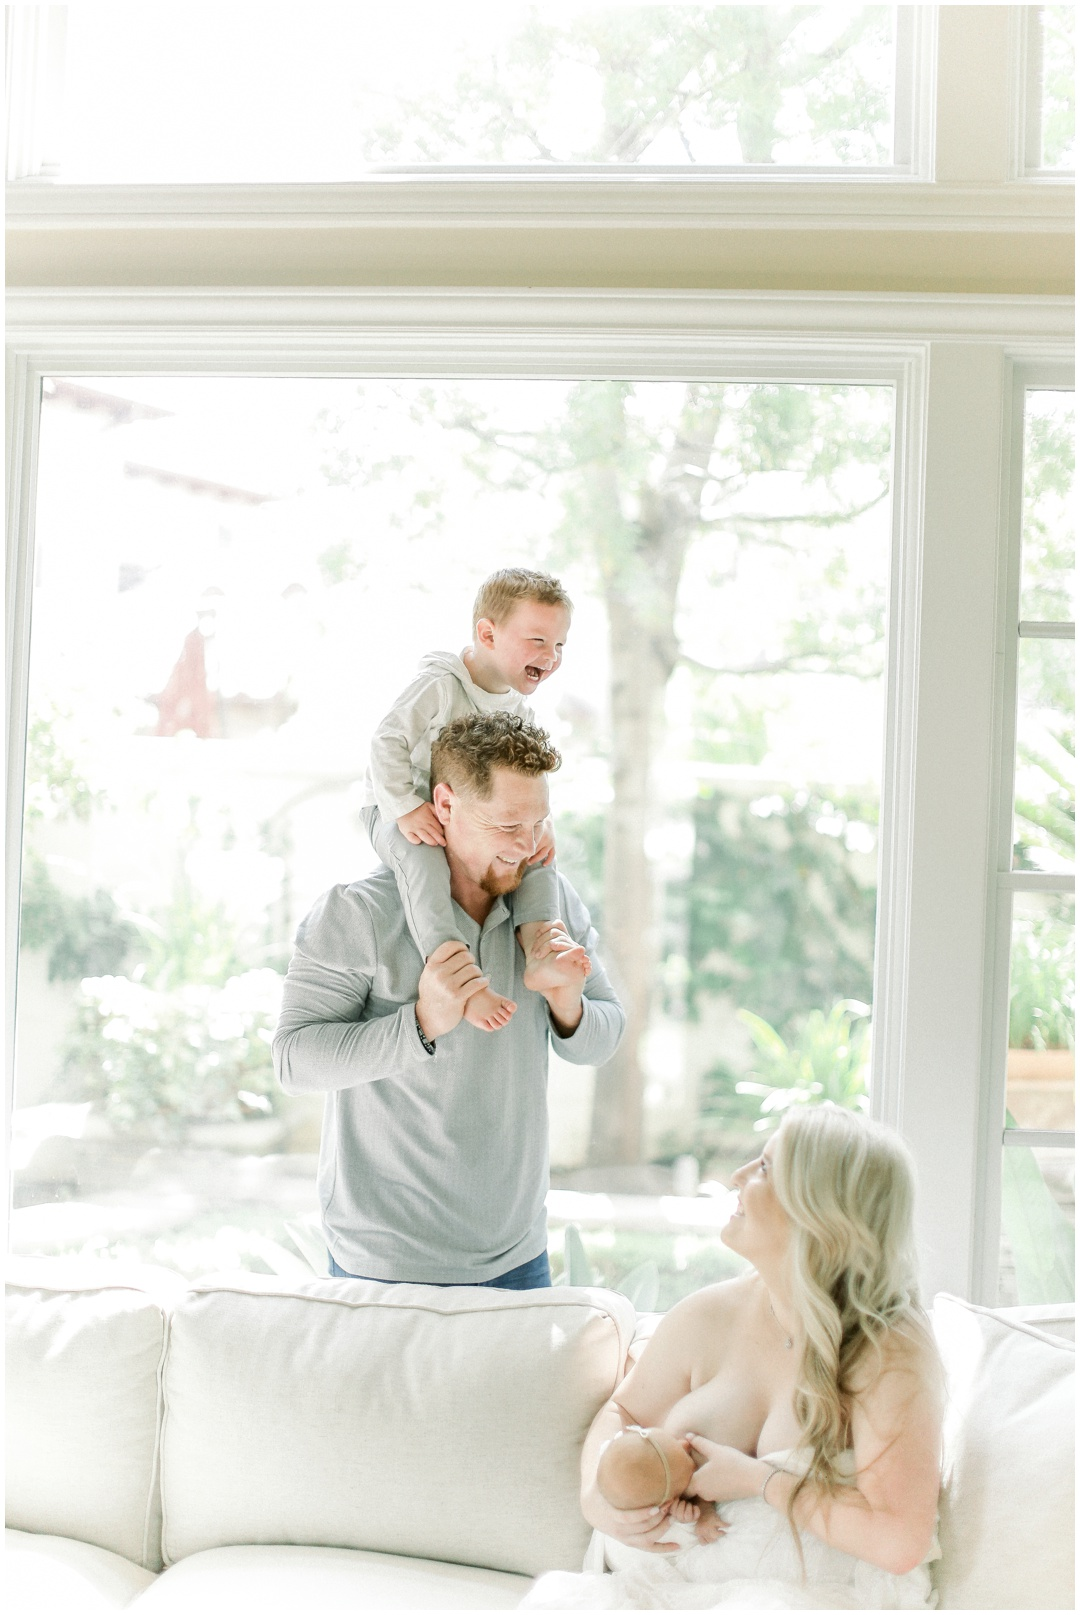 Newport_Beach_Newborn_Light_Airy_Natural_Photographer_Newport_Beach_Photographer_Orange_County_Family_Photographer_Cori_Kleckner_Photography_Newport_Beach_Photographer_newborn_kole_calhoun56_kole_calhoun_Jennifer_Calhoun_Knox_Calhoun_3802.jpg